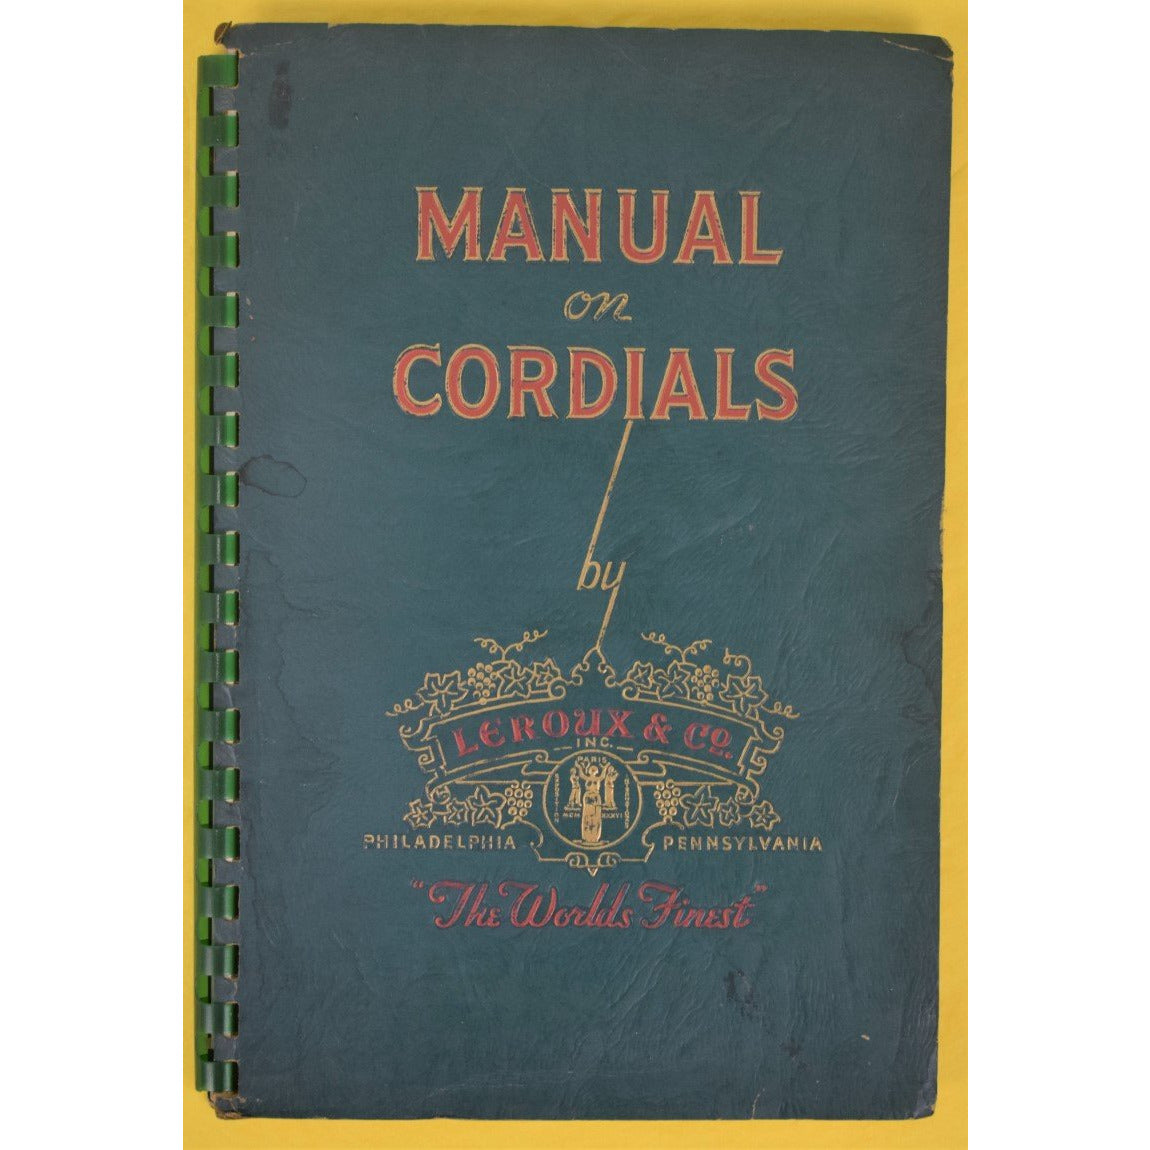 Manual on Cordials